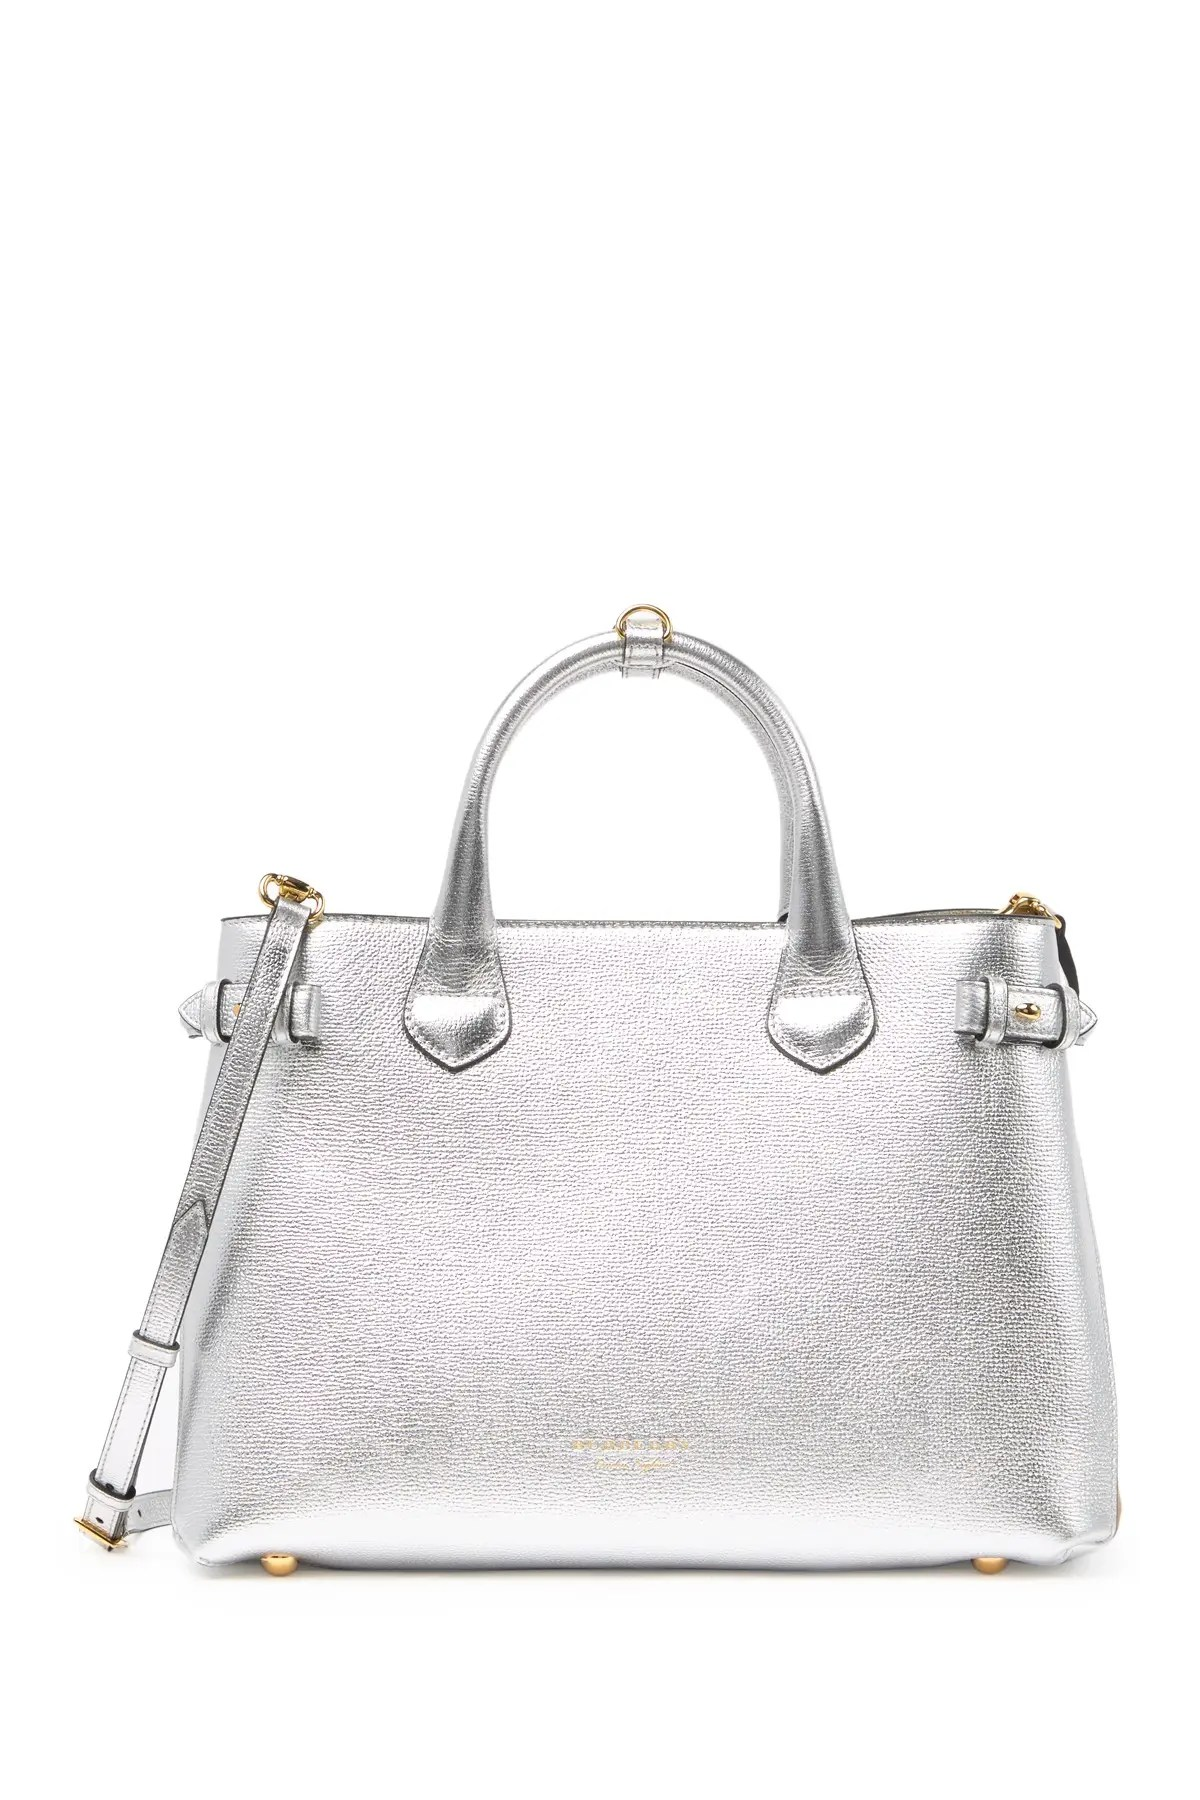 burberry banner leather tote bag